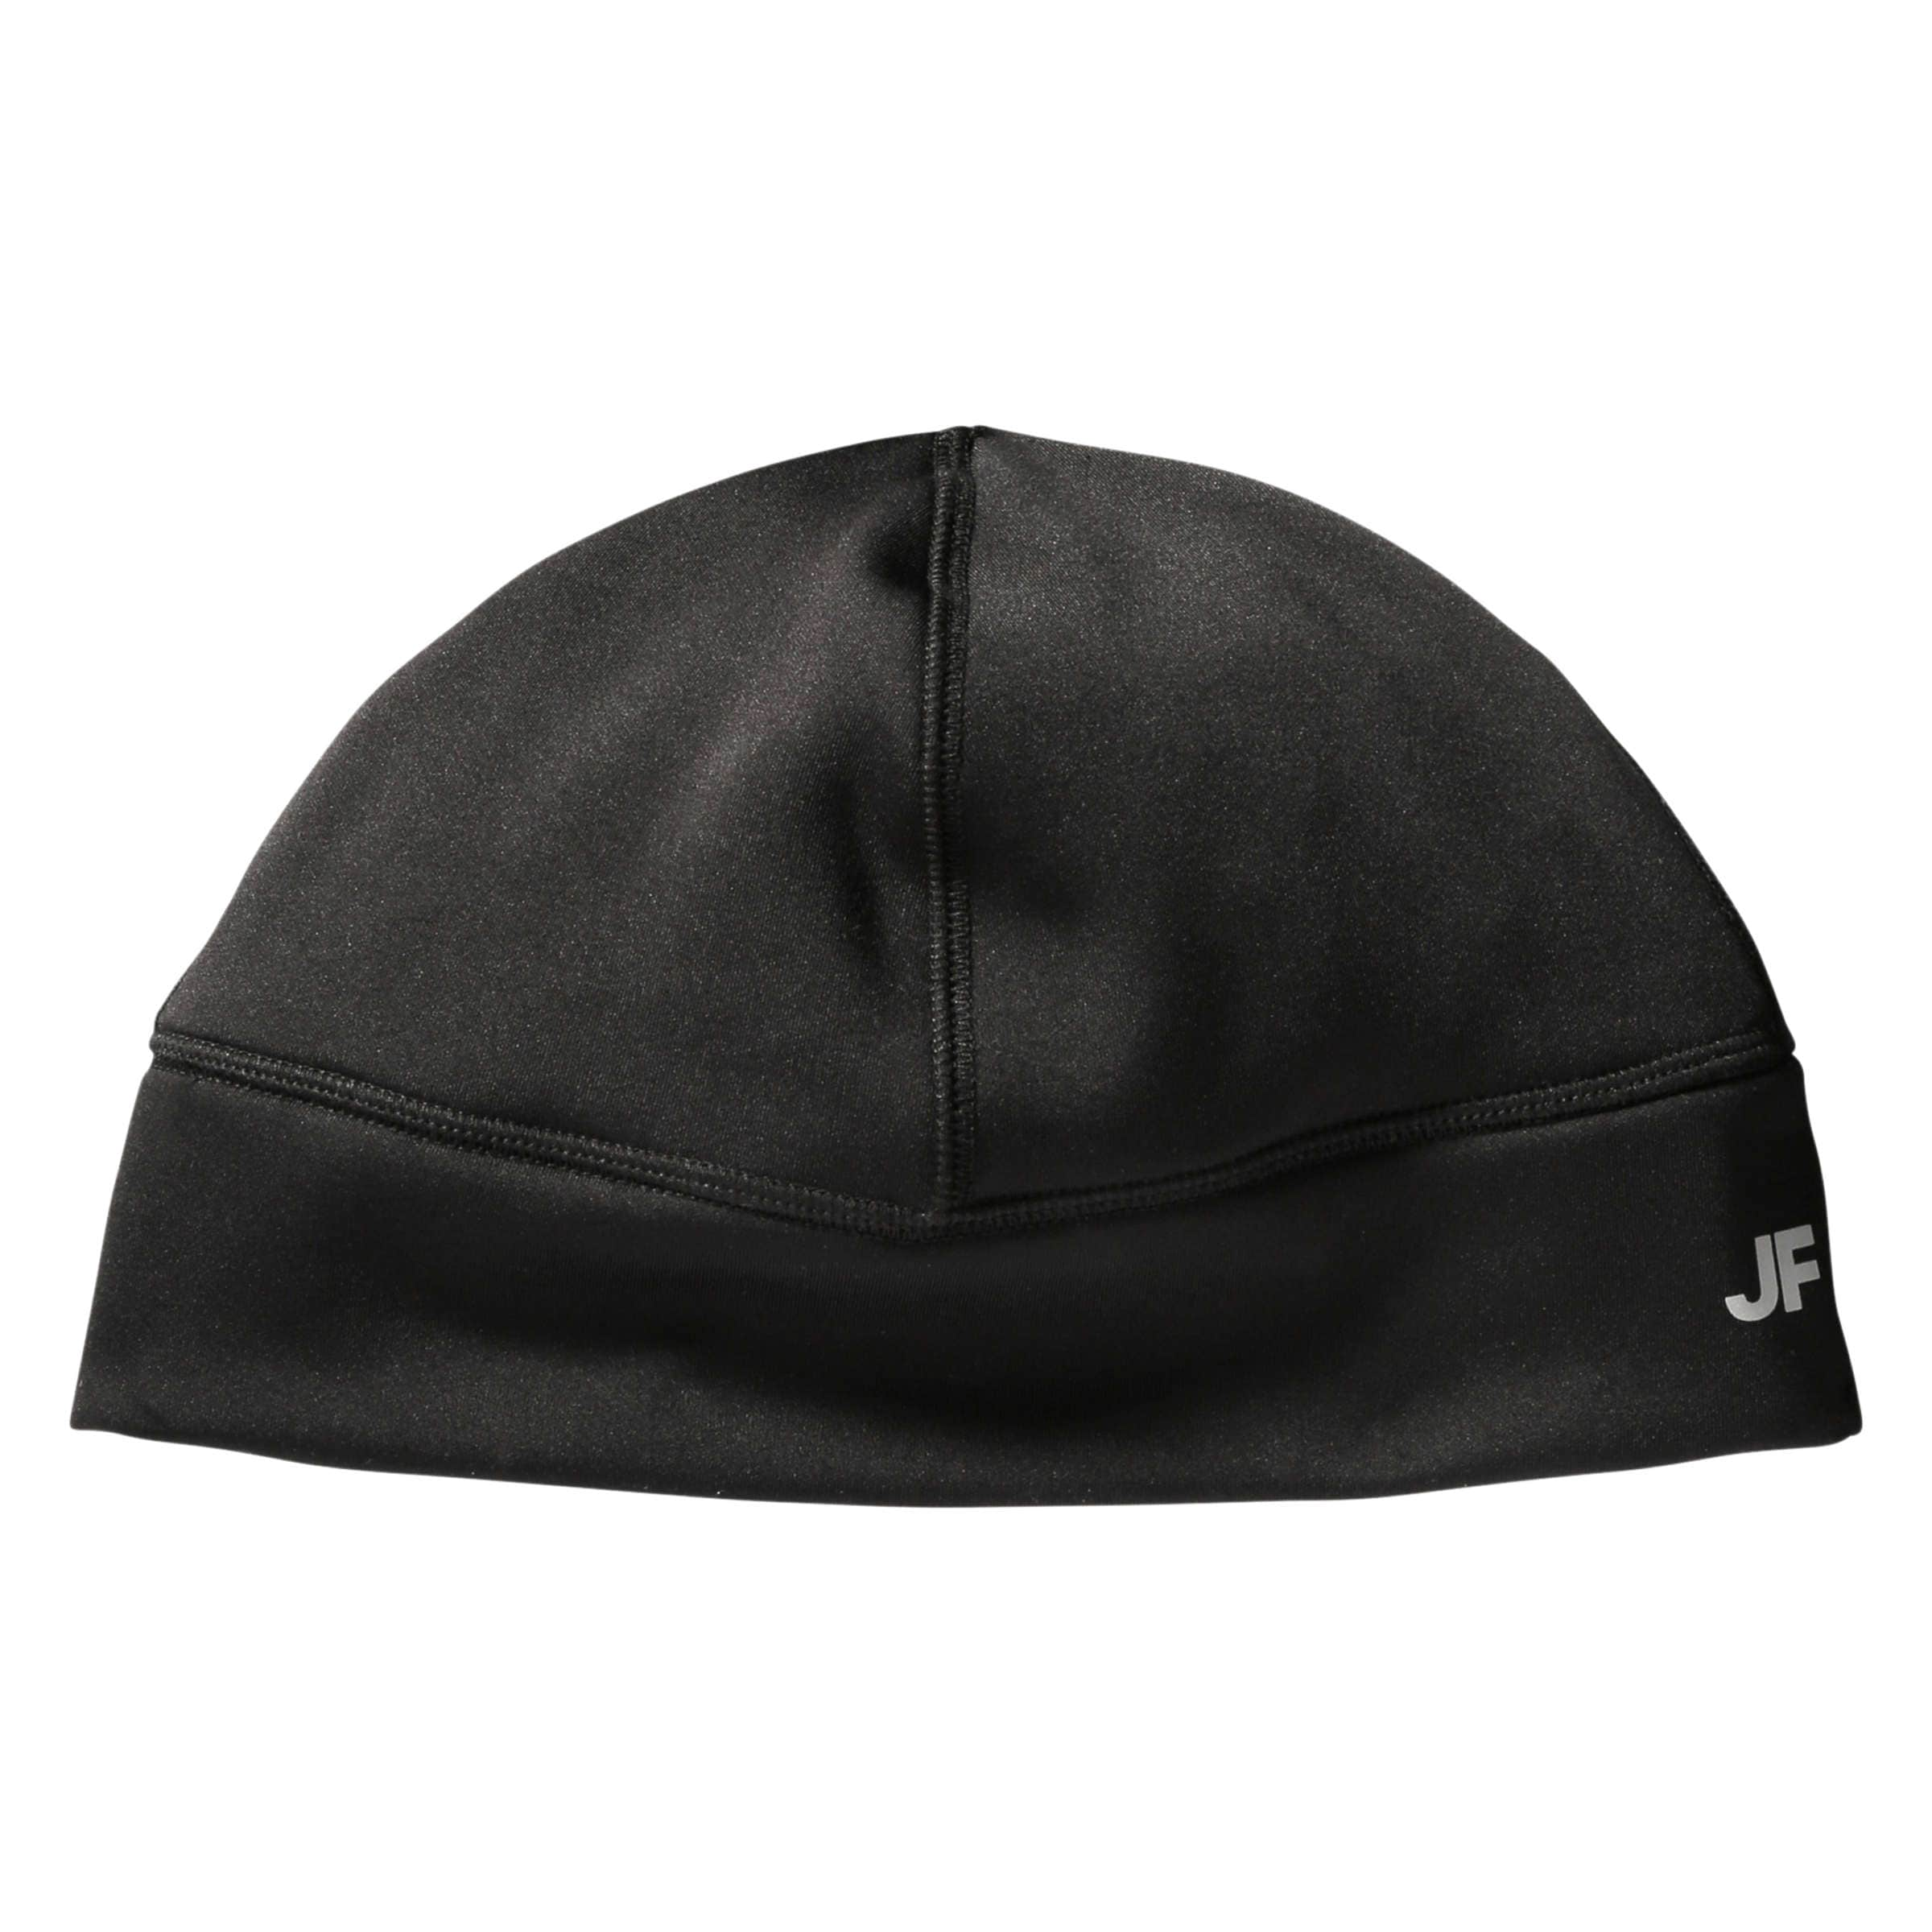 b7680fb8fca Men s Active Hat in JF Black from Joe Fresh